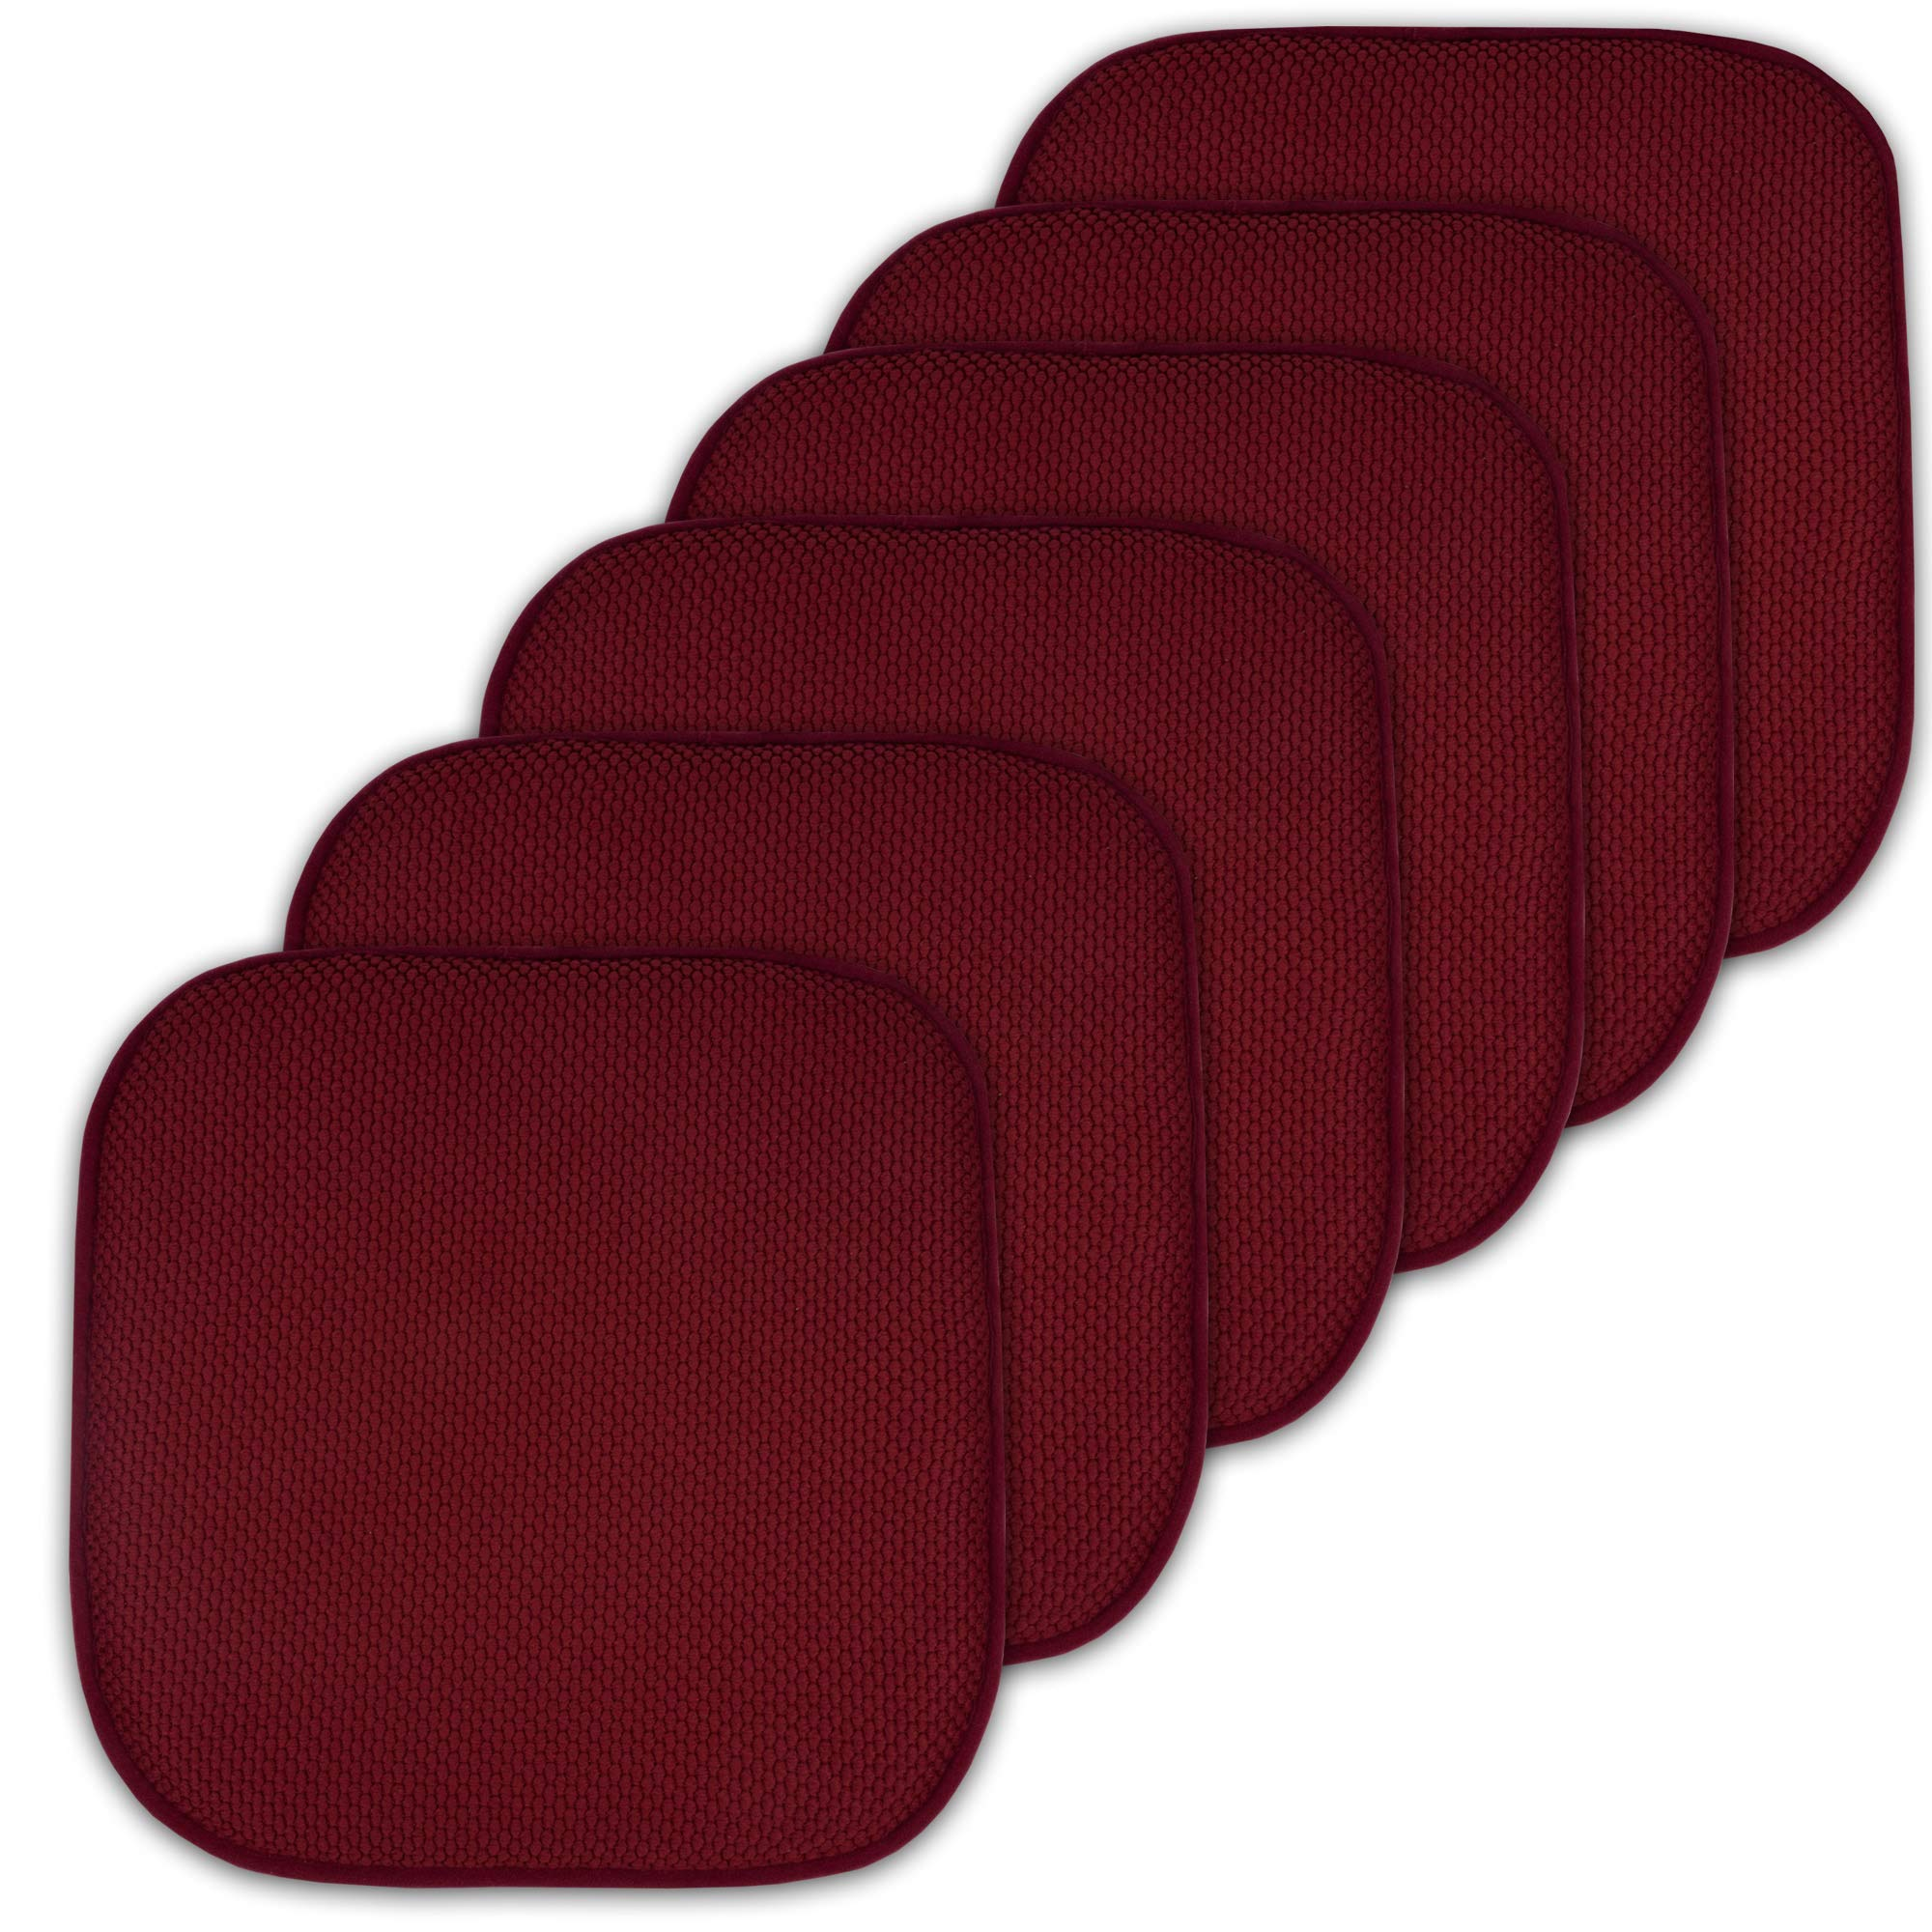 Sweet Home Collection Cushion Memory Foam Chair Pads Honeycomb Nonslip Back Seat Cover 16'' x 16'' 6 Pack Wine Burgundy